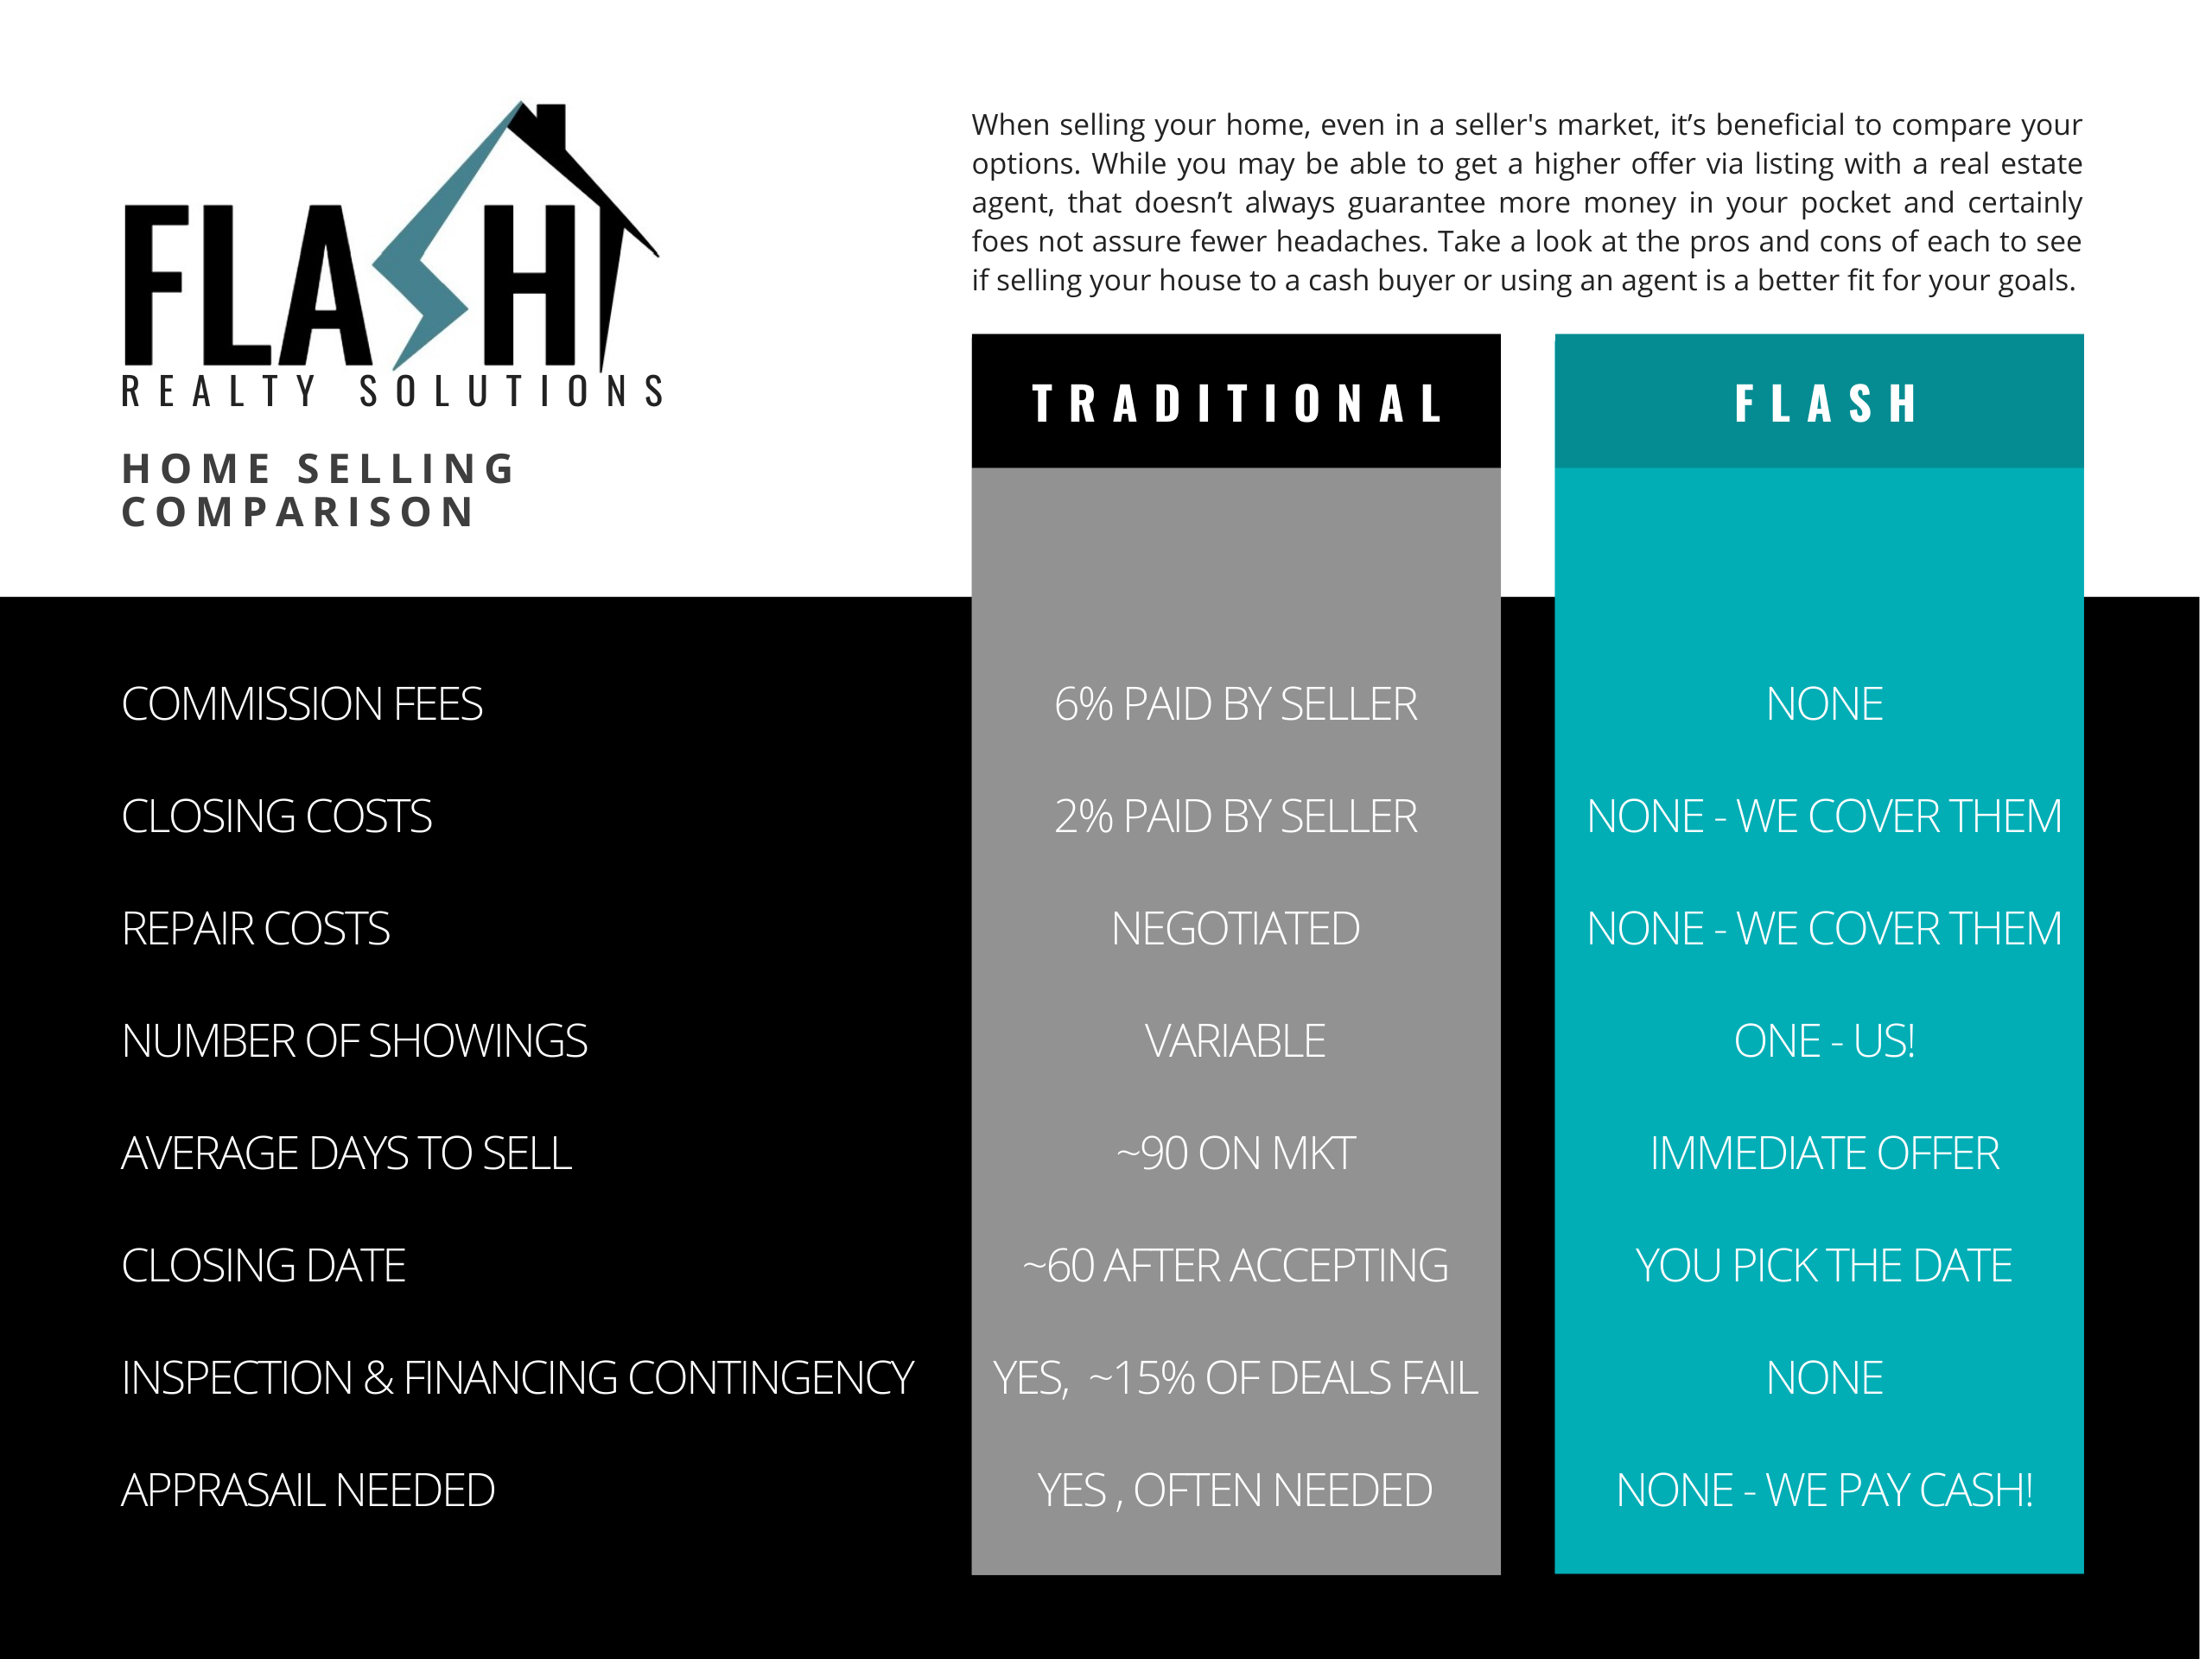 Cash Buyer or Investor Over Real Estate Agent. Cash Buyer with Flash Realty is best